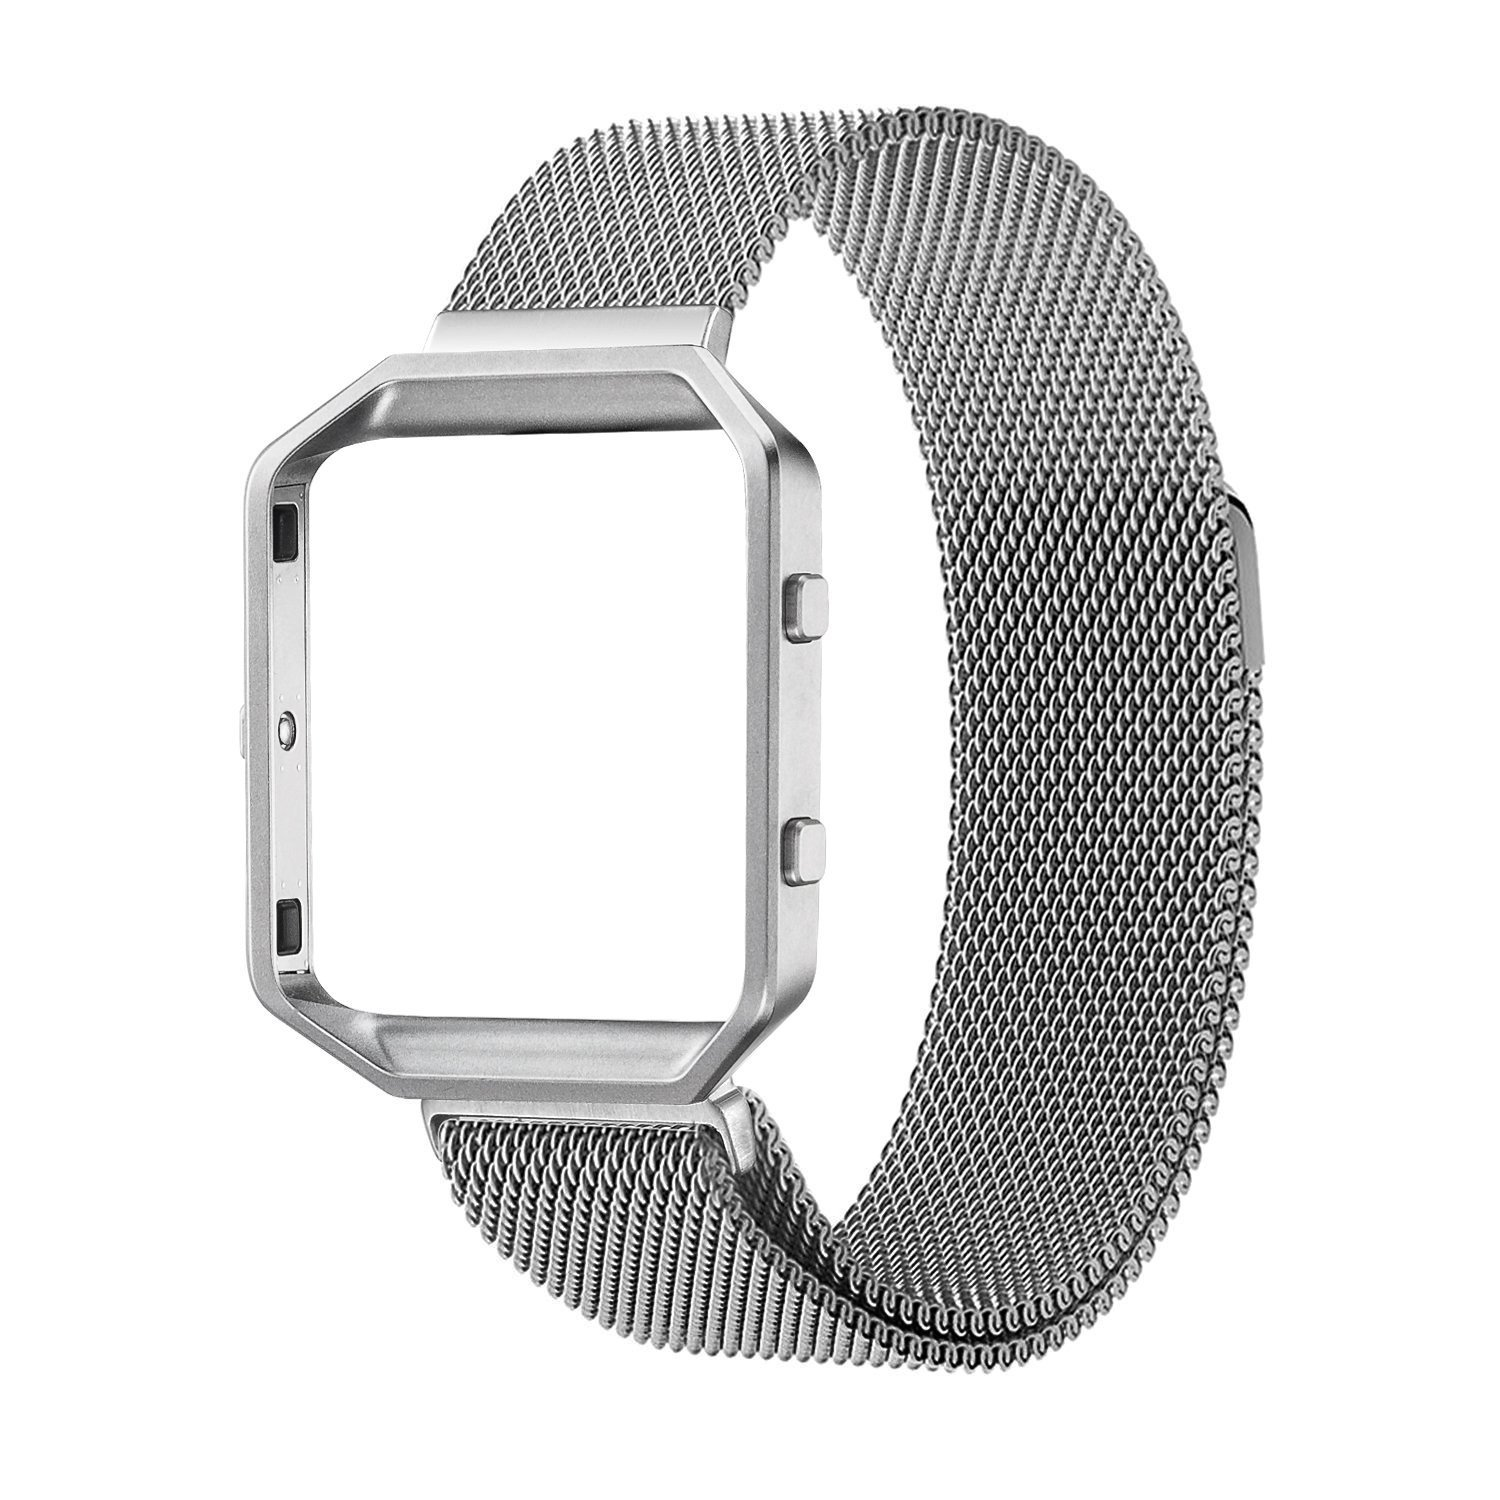 Fitbit Blaze Accessory Band,Large(6.3-9.1 in),Oitom Frame Housing+Milanese loop stainless steel Bracelet Strap for Fitbit Blaze Smart Fitness Watch (Silver Frame+Loop)